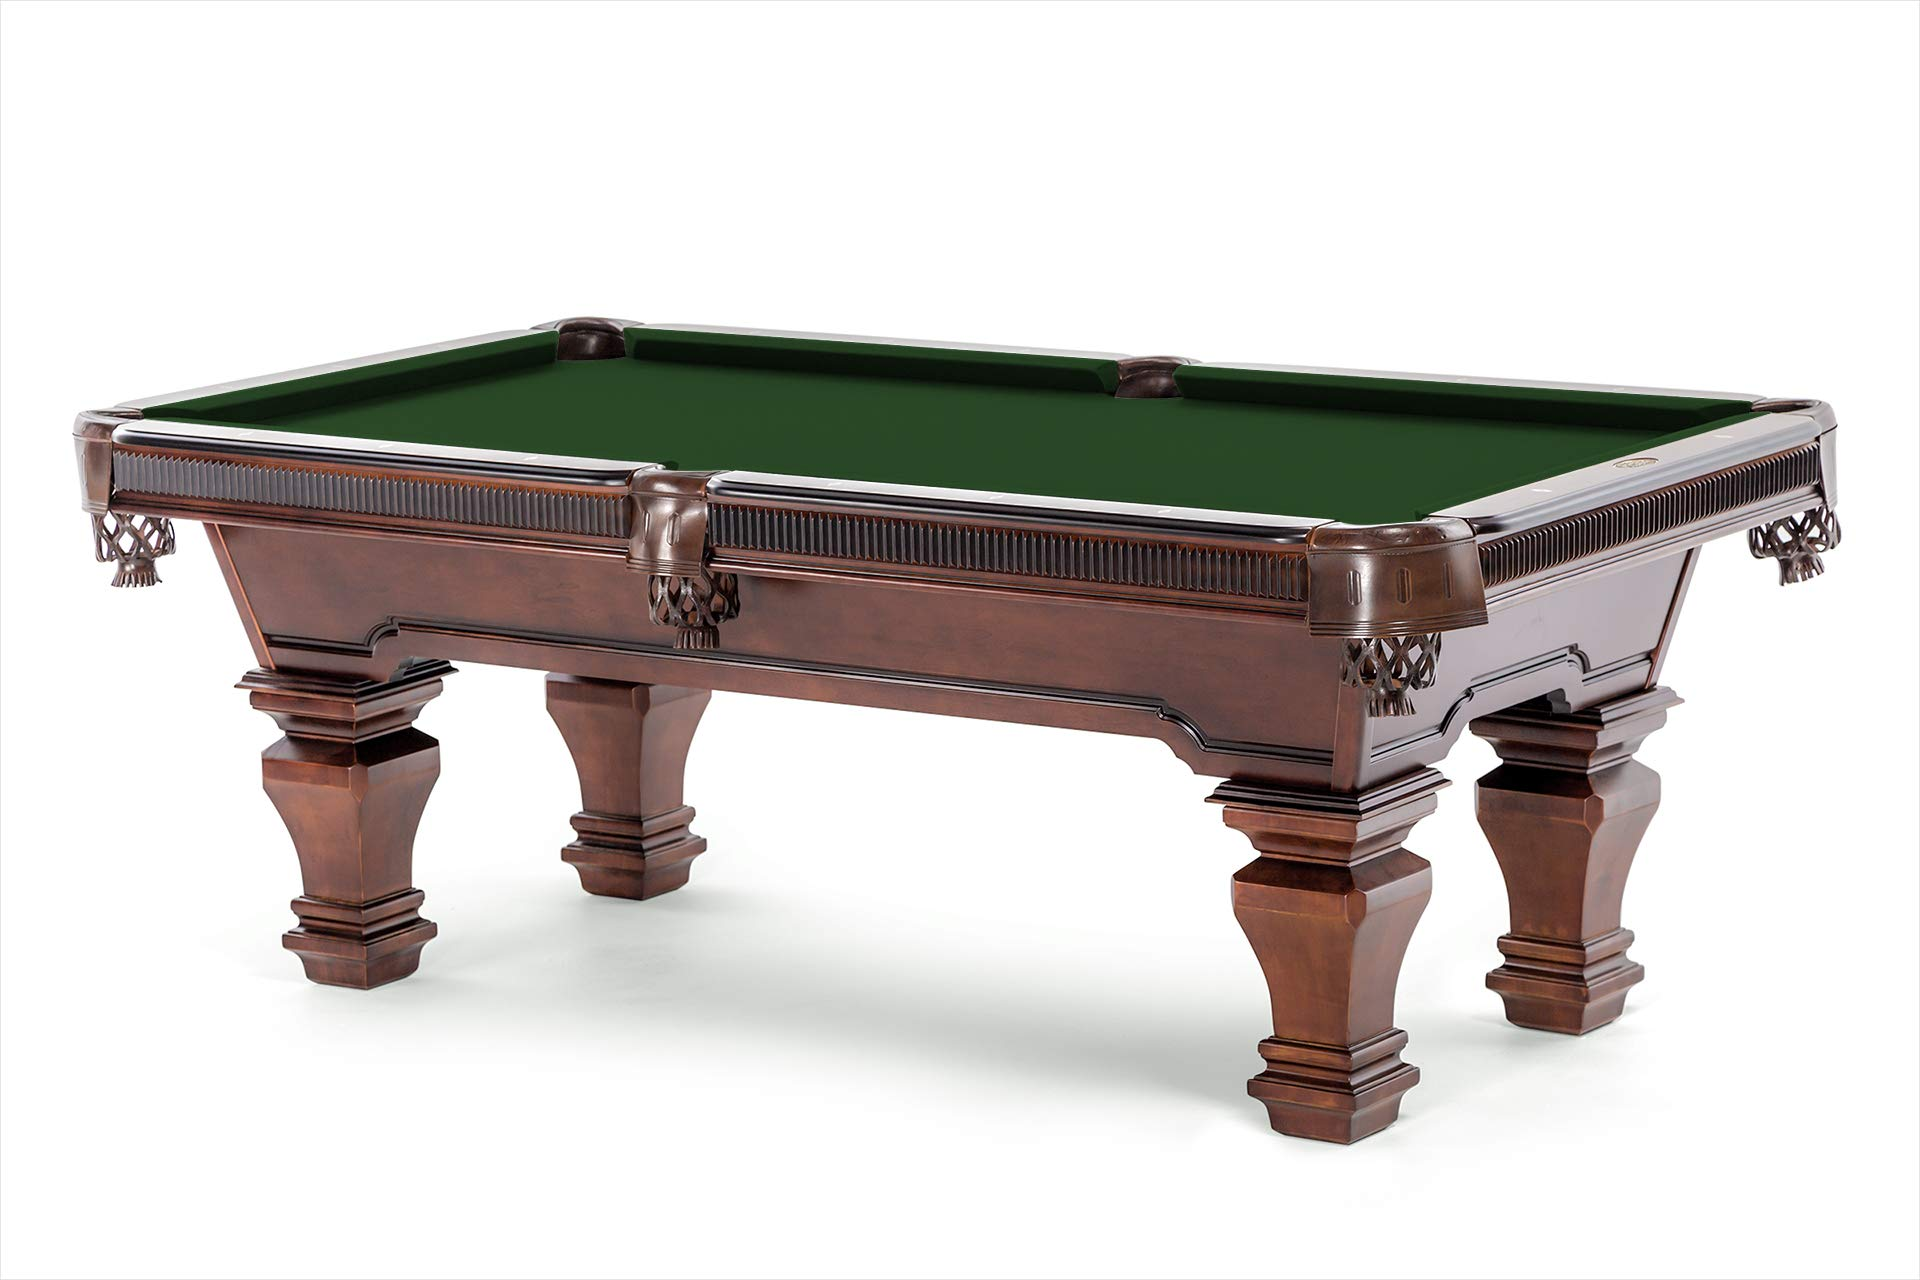 Spencer Marston Stratford Pool Table